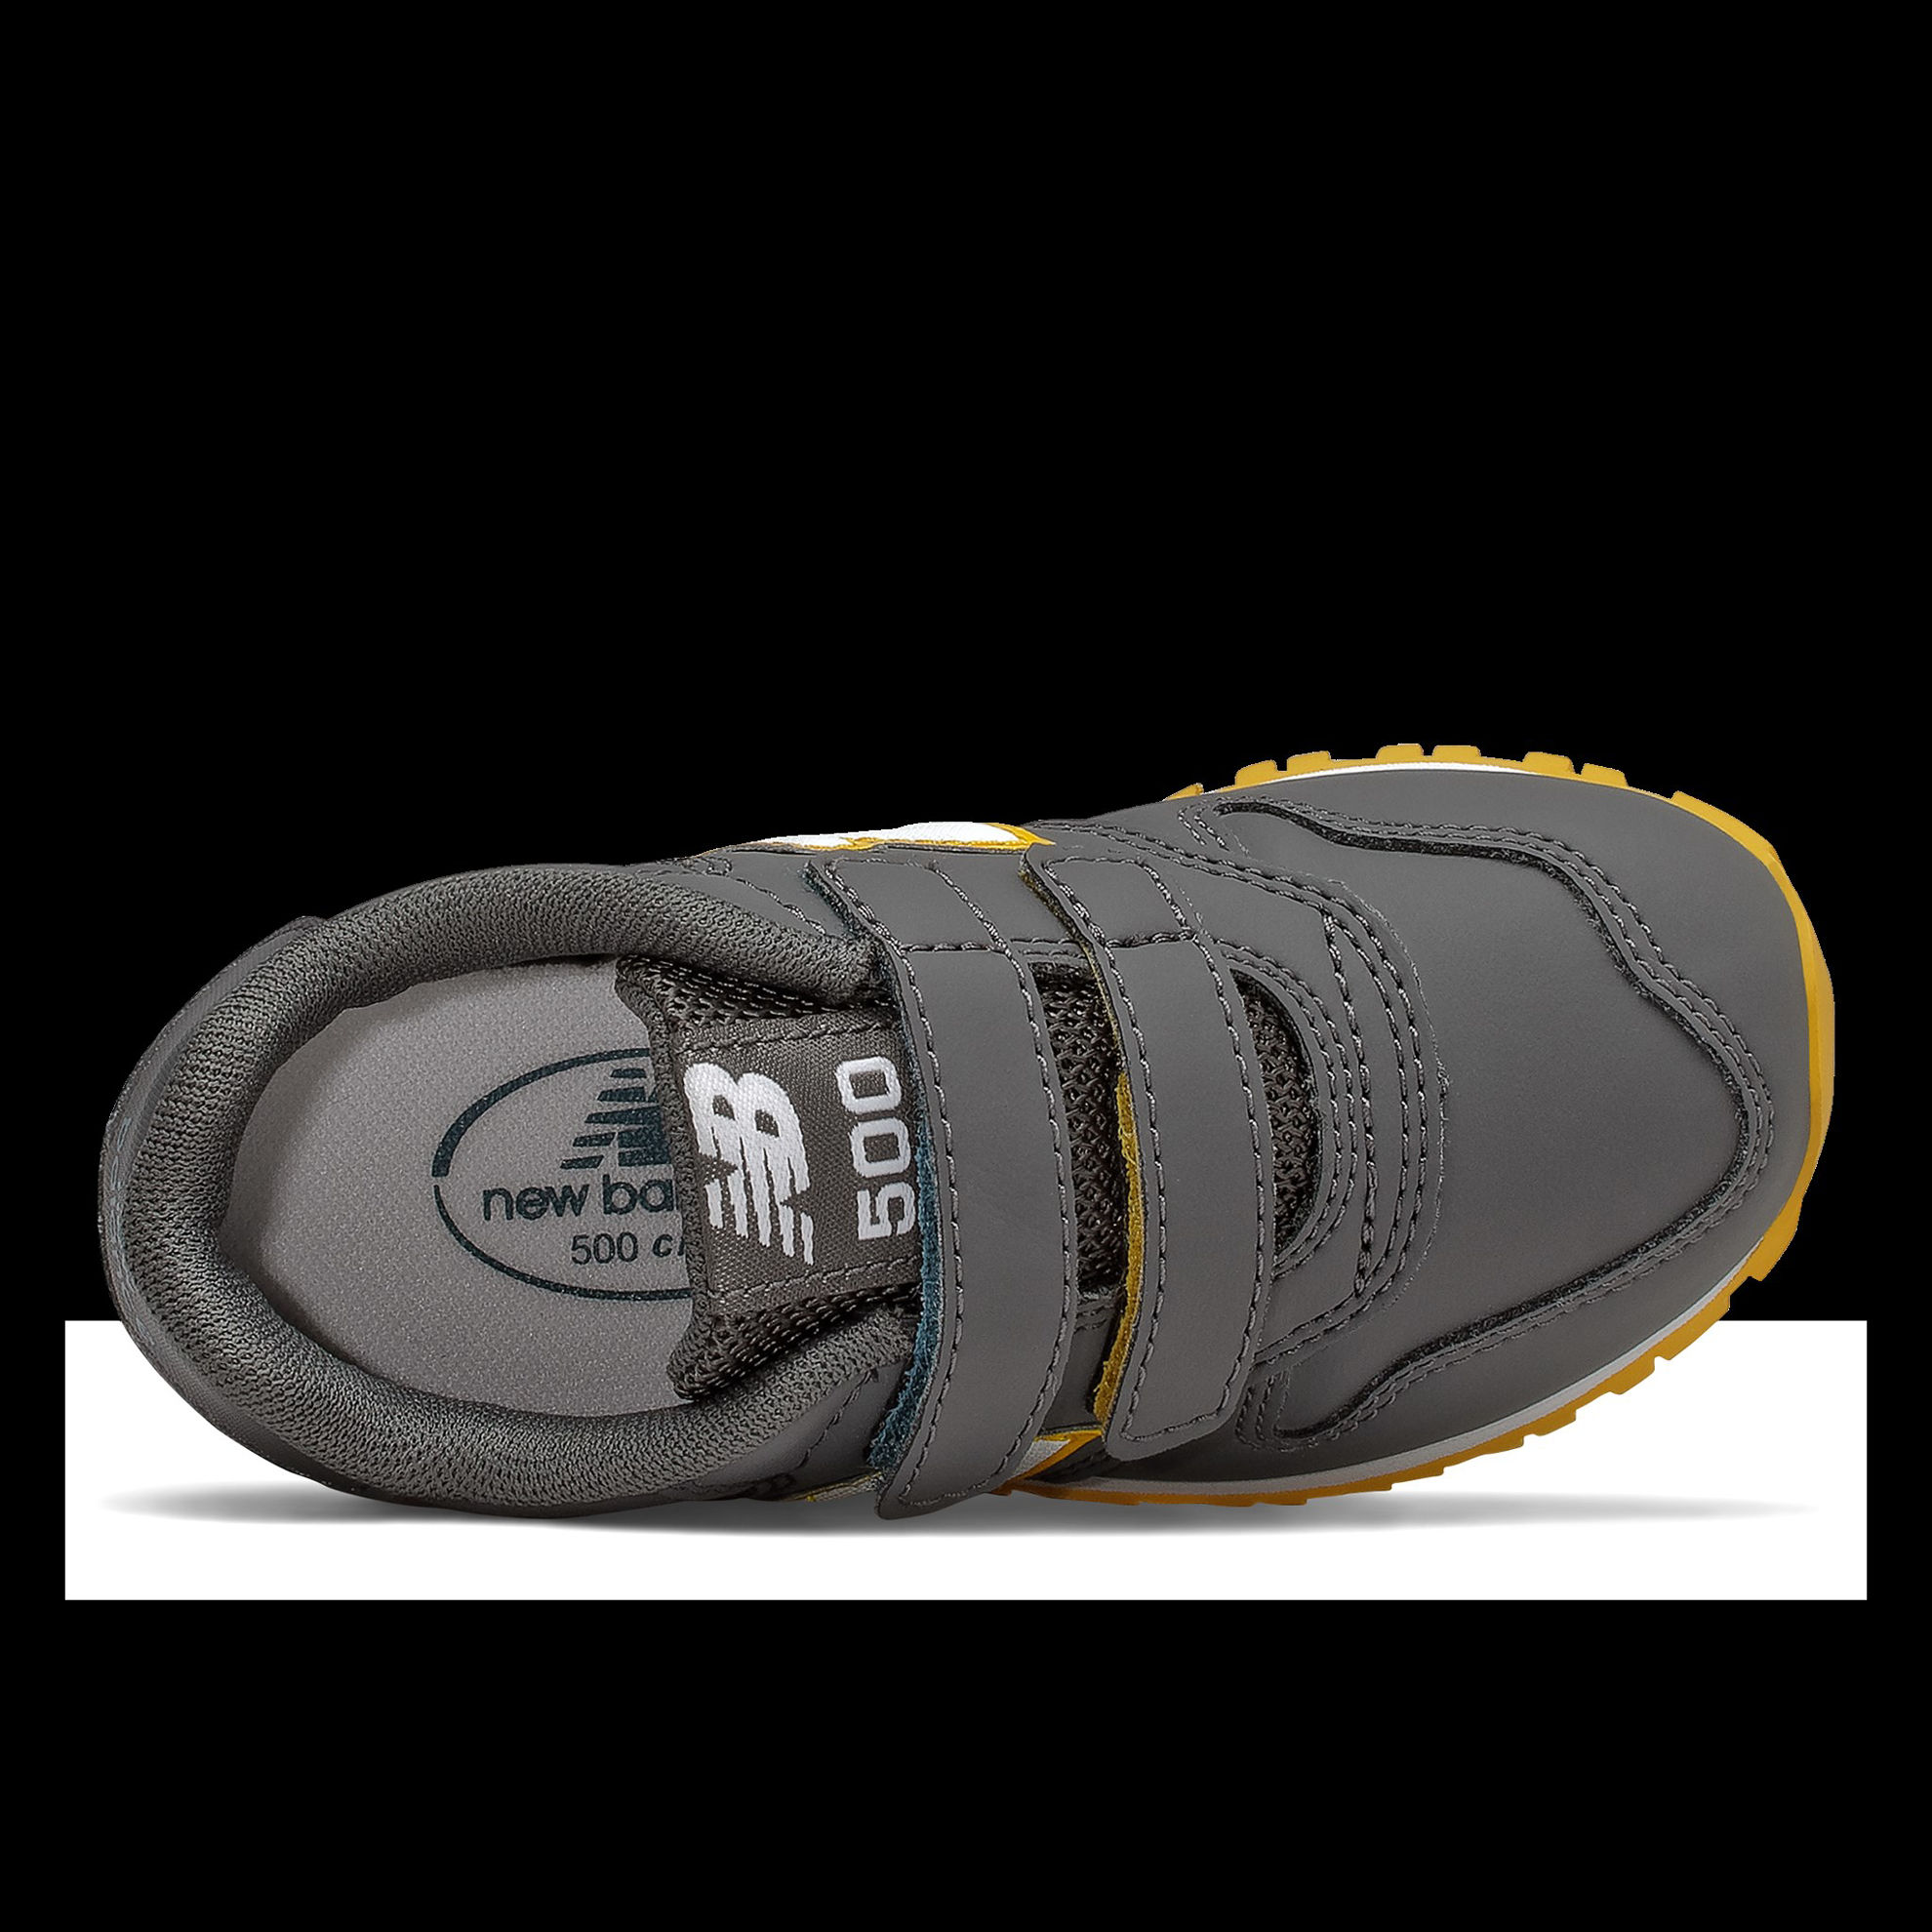 Immagine di SCARPA KIDS LIFESTYLE GREY/YELLOW SYNTHETIC / TEXTILE